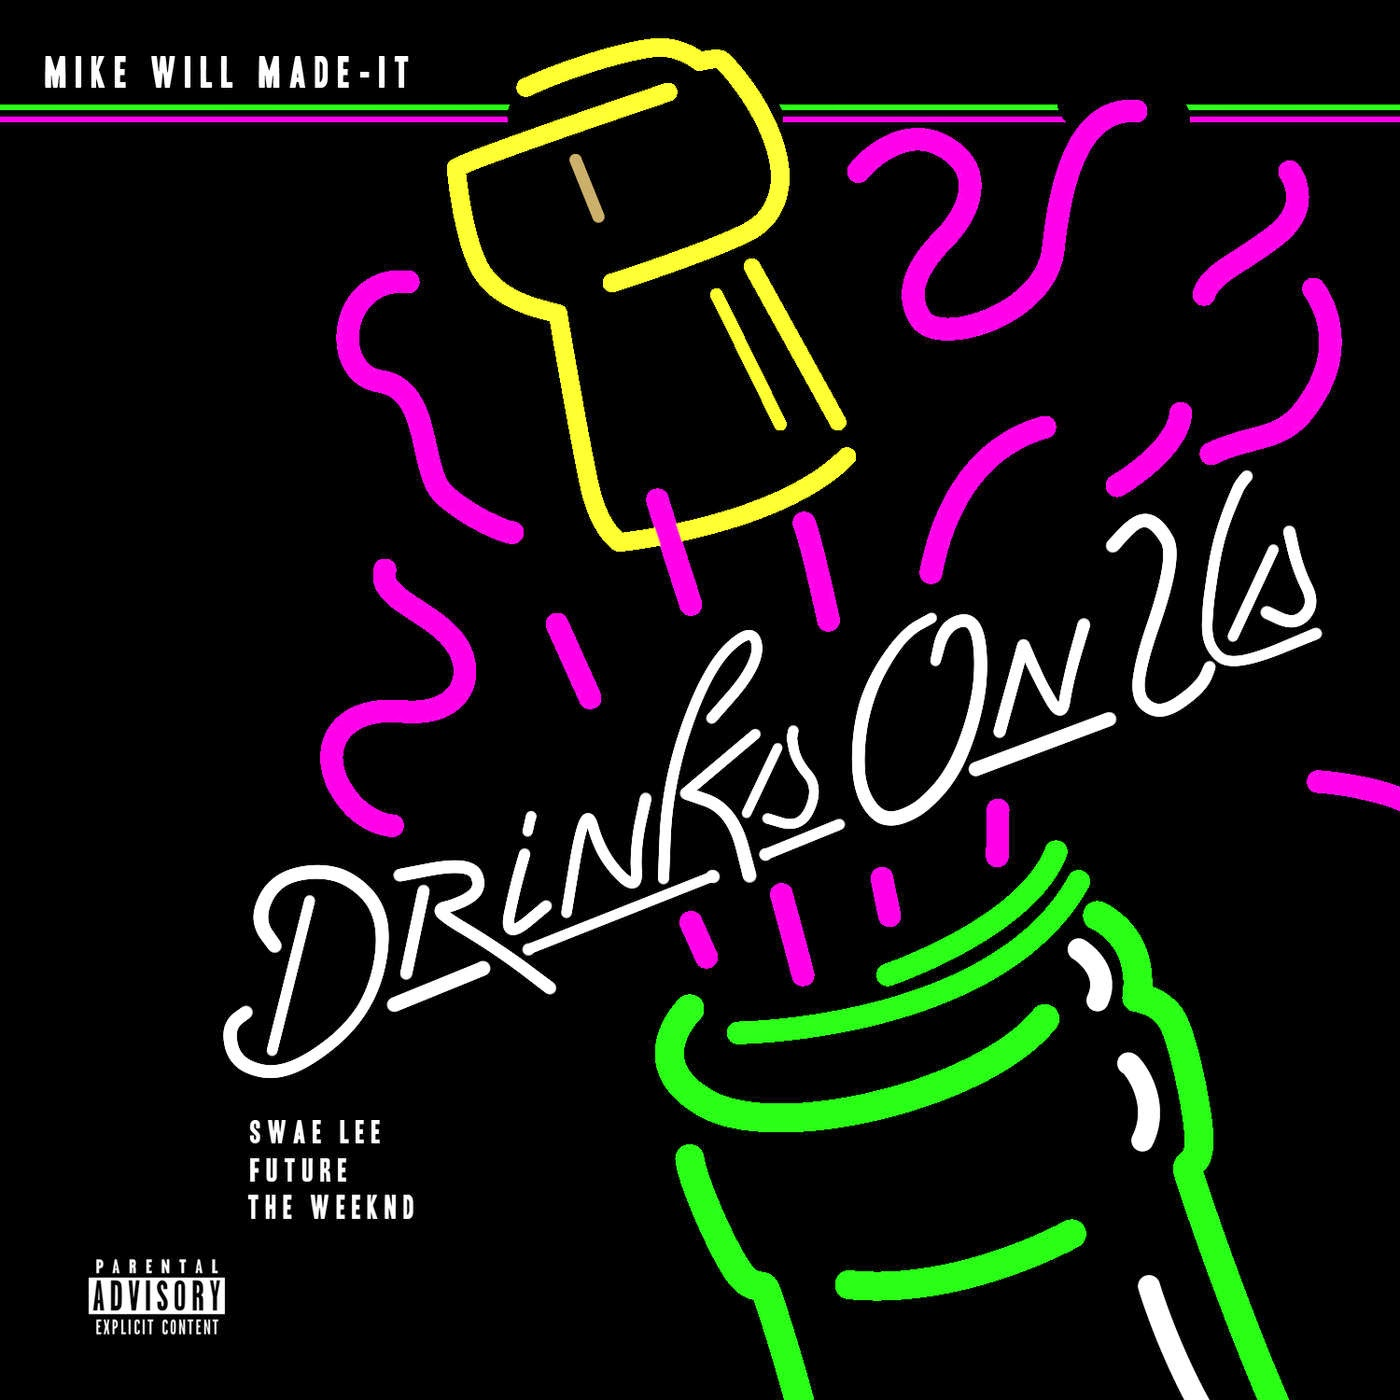 Mike WiLL Made It – 'Drinks On Us' (Feat. Swae Lee, Future ...